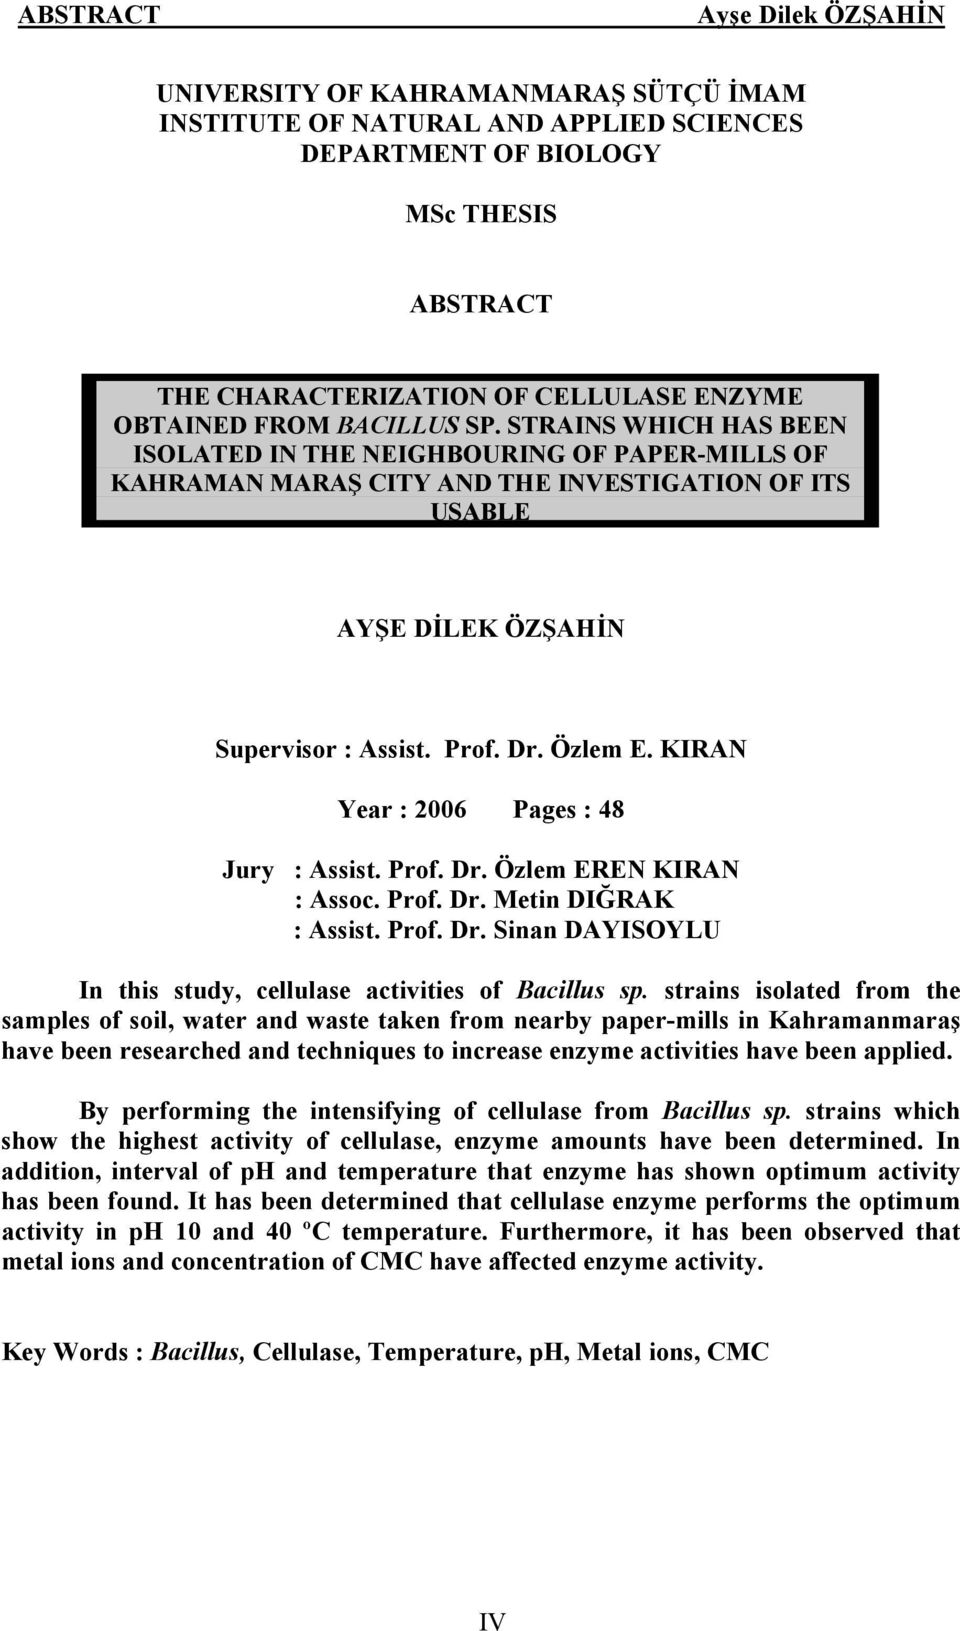 KIRAN Year : 2006 Pages : 48 Jury : Assist. Prof. Dr. Özlem EREN KIRAN : Assoc. Prof. Dr. Metin DIĞRAK : Assist. Prof. Dr. Sinan DAYISOYLU In this study, cellulase activities of Bacillus sp.